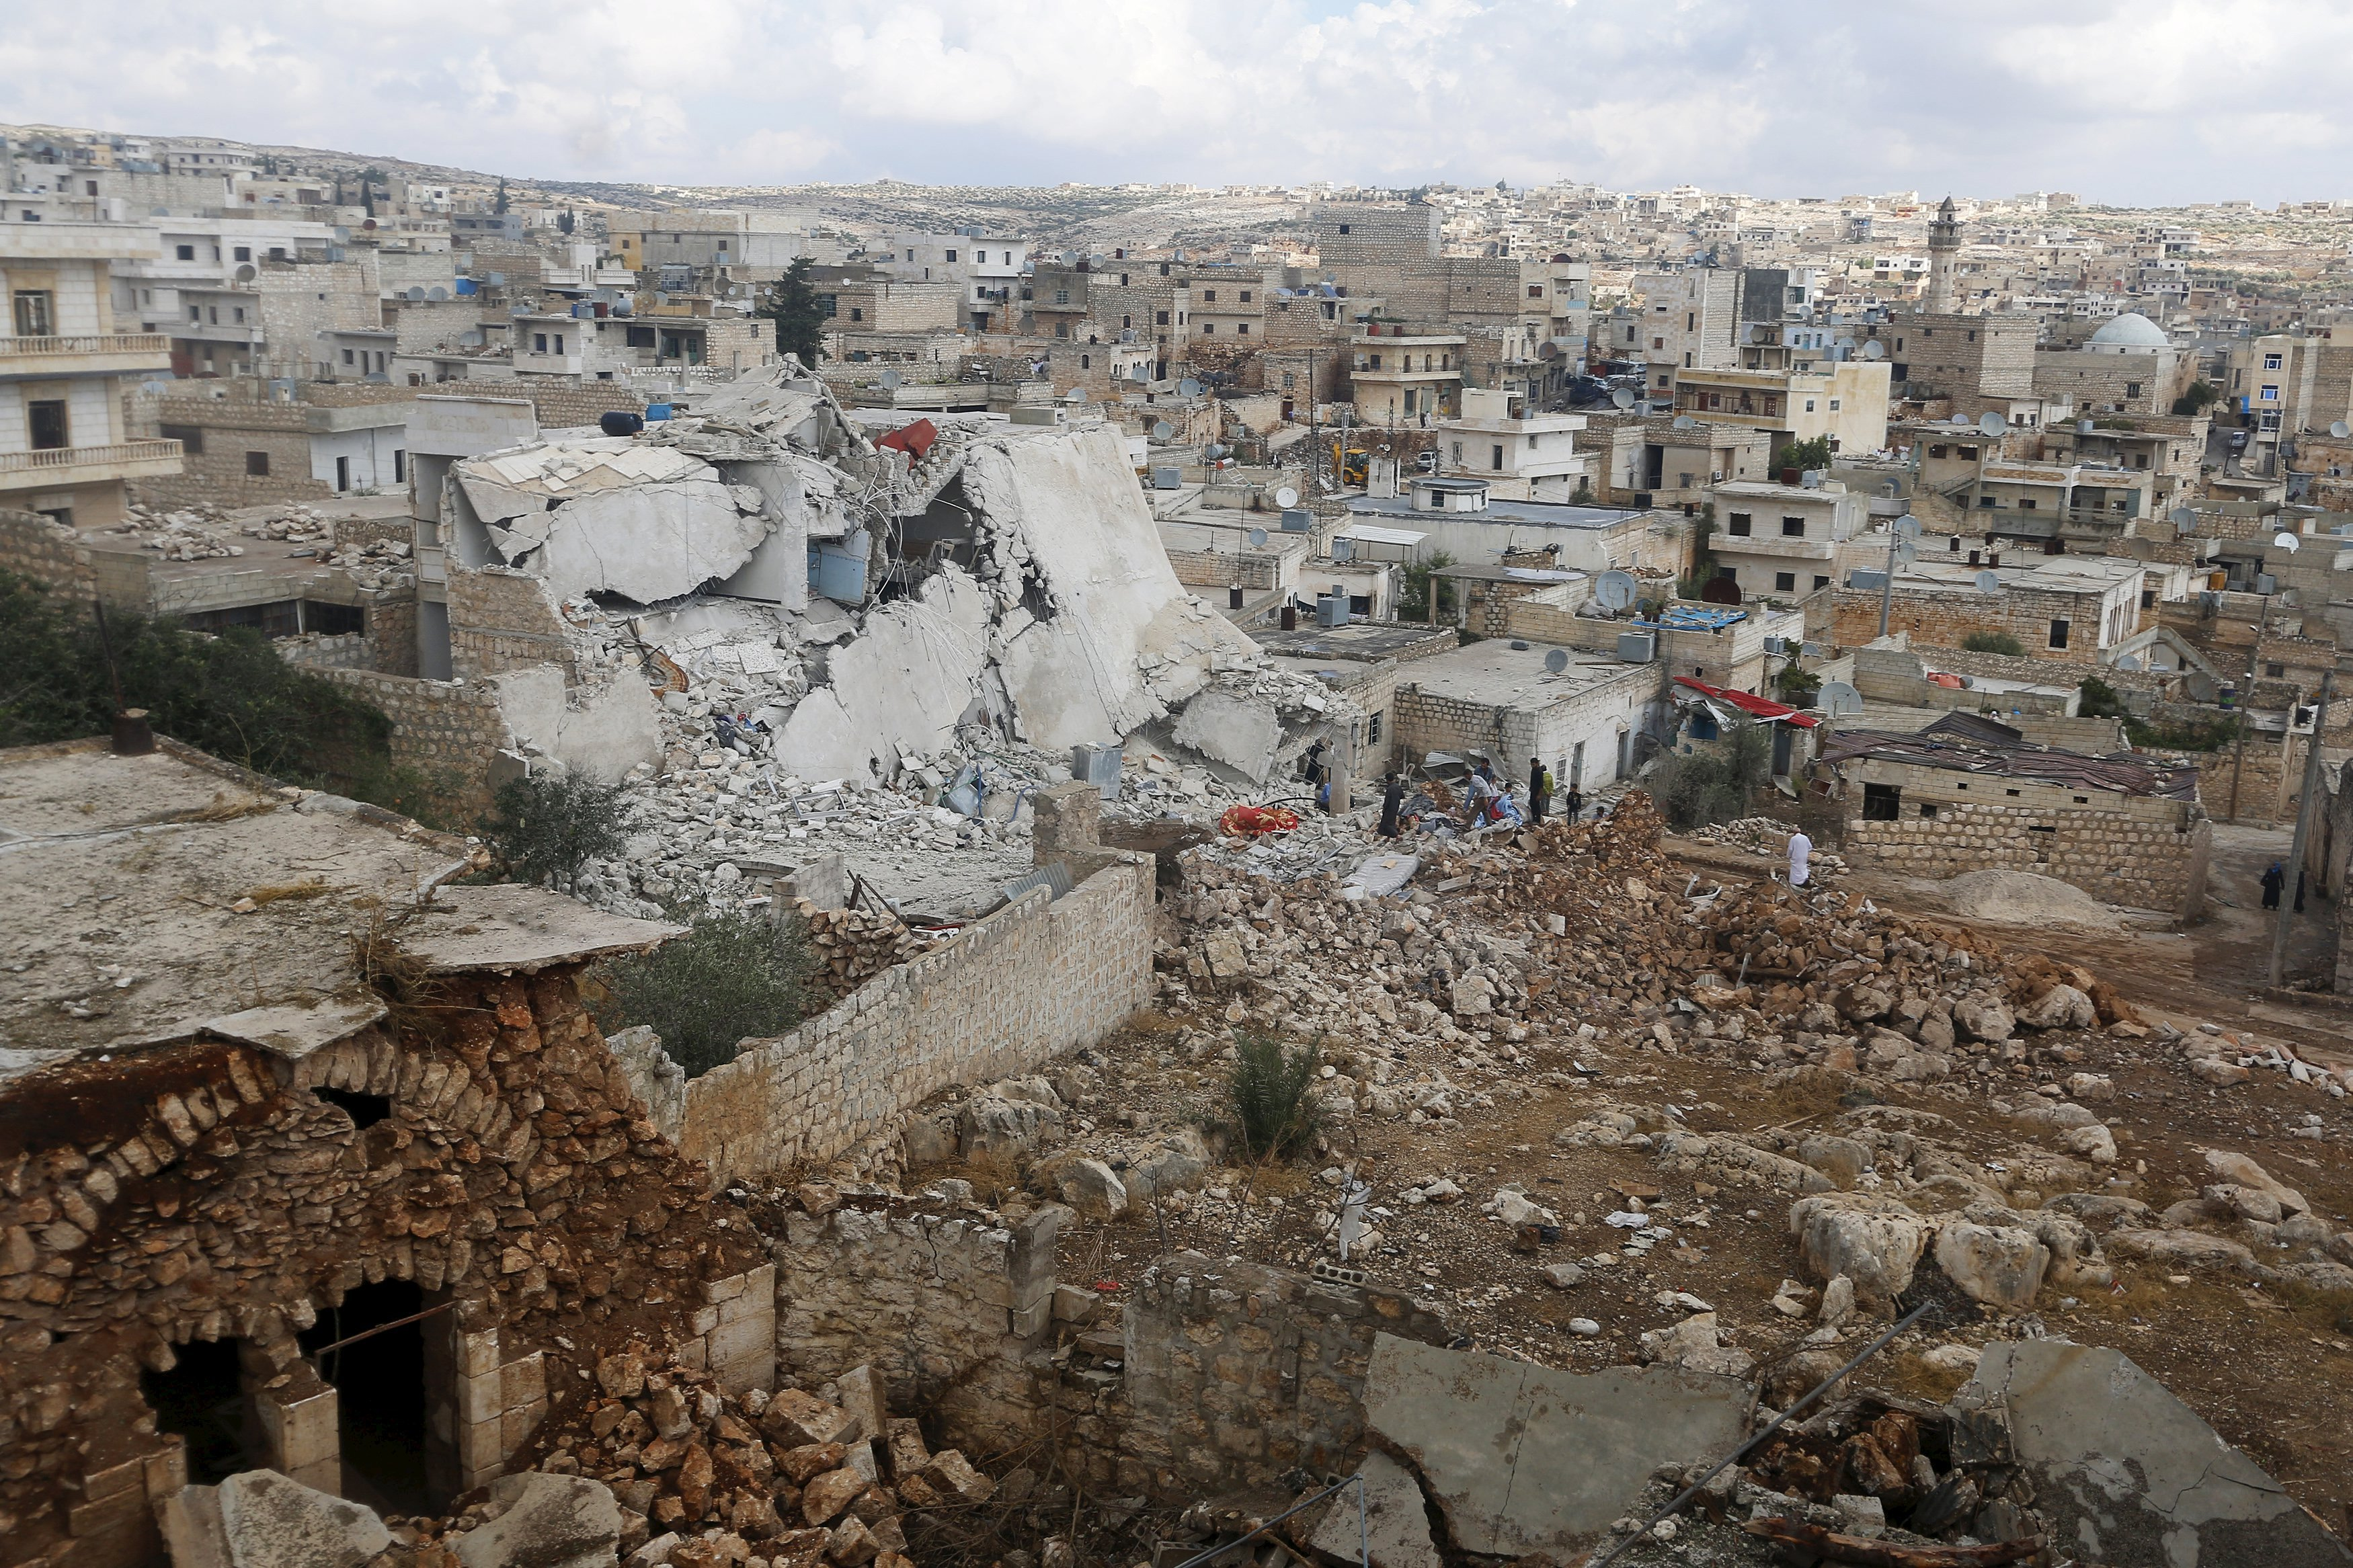 People inspect a site hit by what residents said were airstrikes carried out by the Russian air force in the town of Darat Izza in Aleppo's countryside on Oct. 7, 2015.